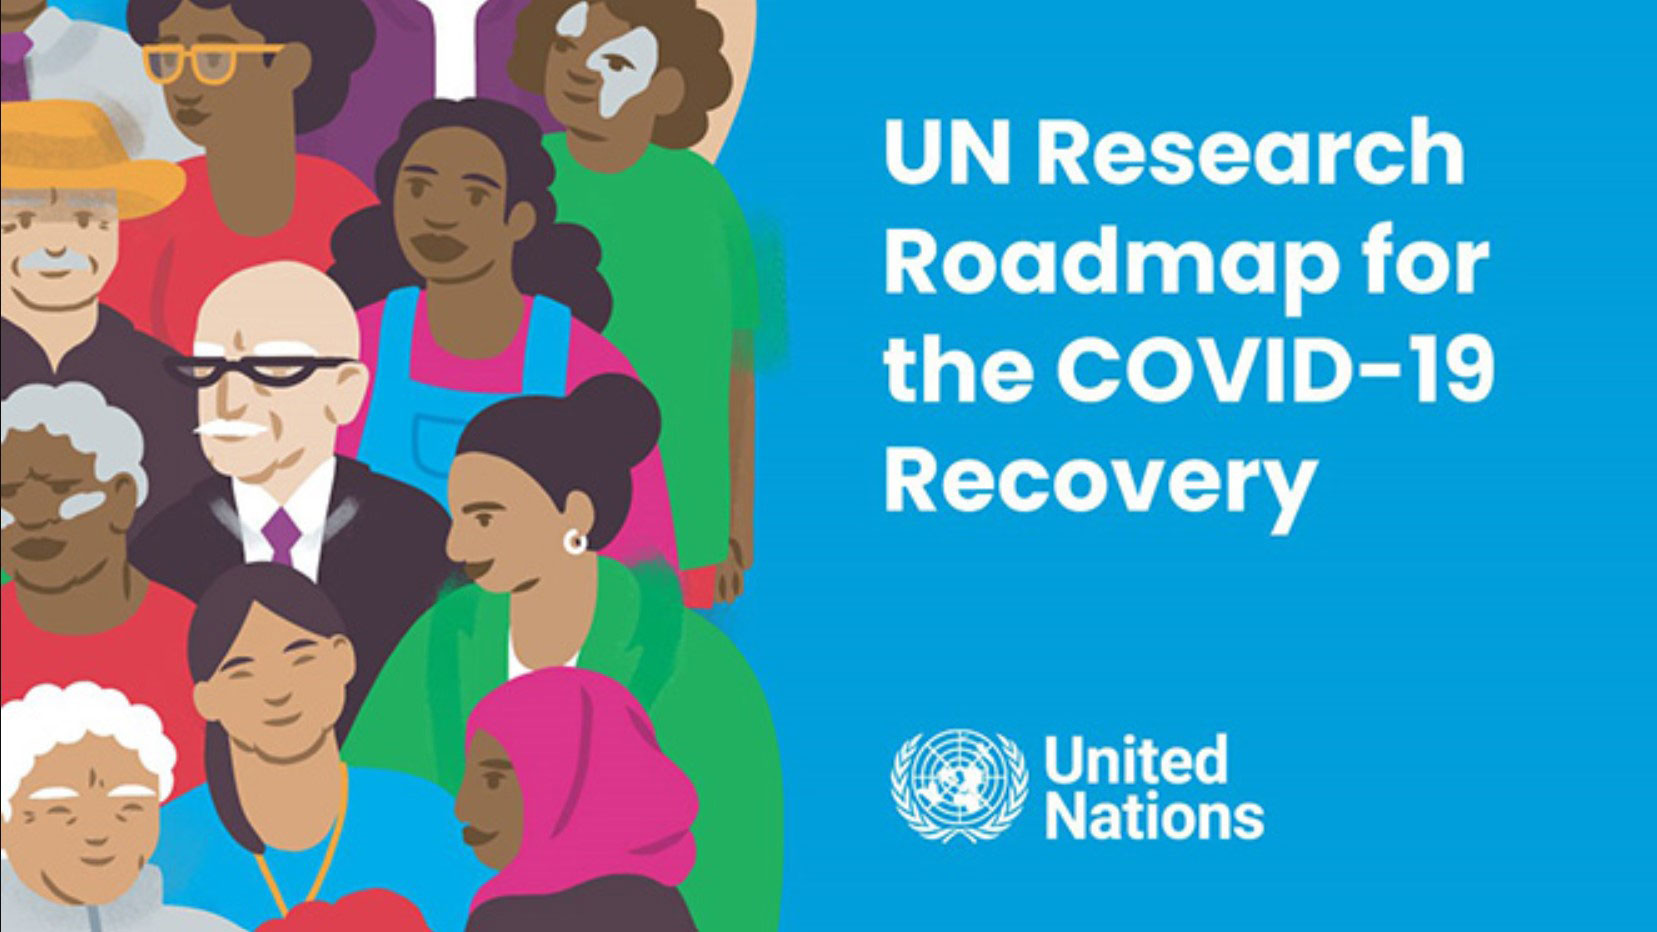 MAP researchers contribute to United Nations' Research Roadmap for the COVID-19 Recovery